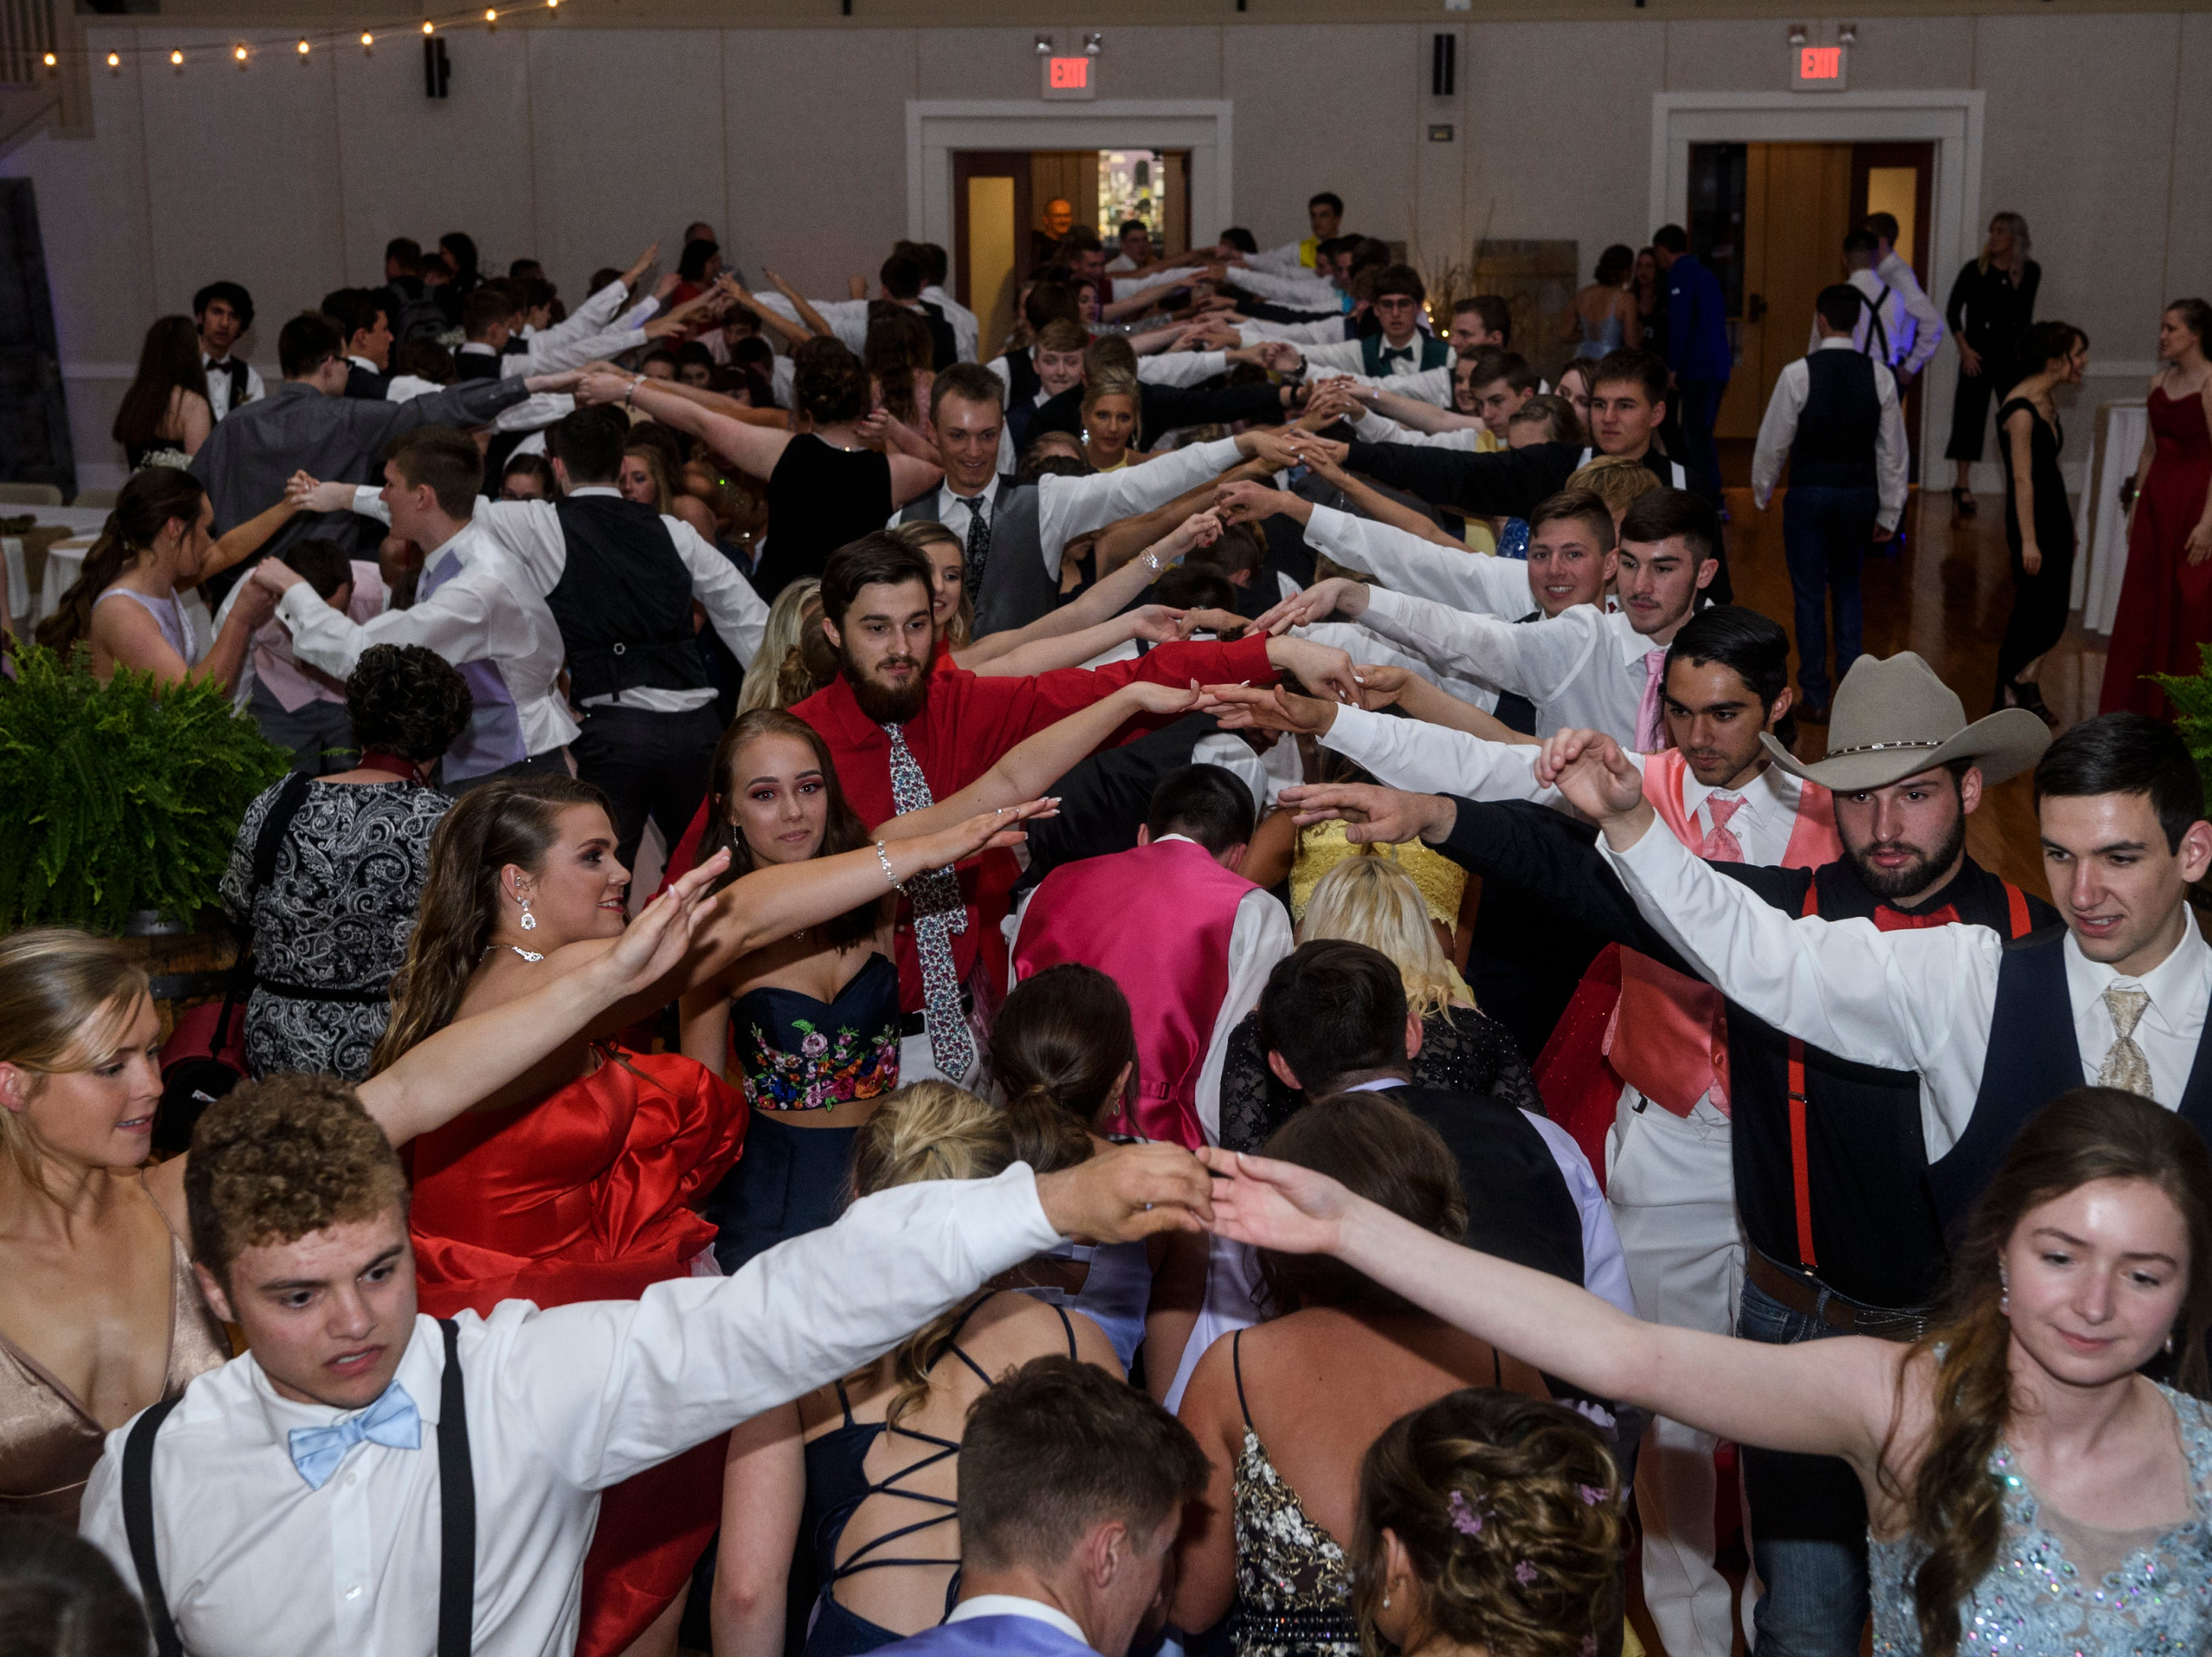 Students dance the night away during North Posey's prom held at the Ribeyre Center gymnasium in New Harmony, Ind., Saturday, May 4, 2019.